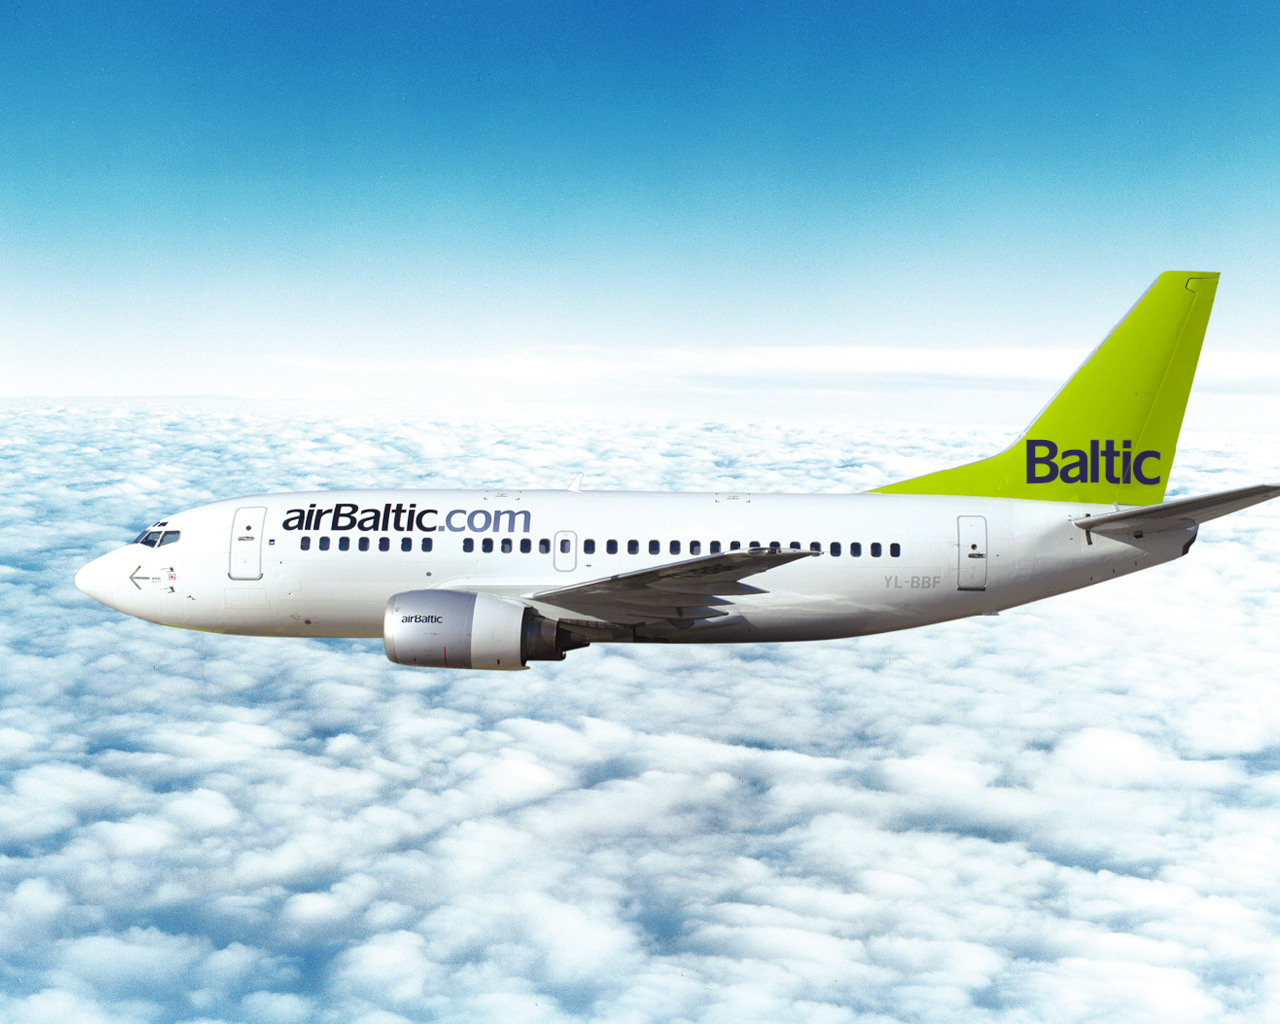 Wallpapers with airBaltic airplanes